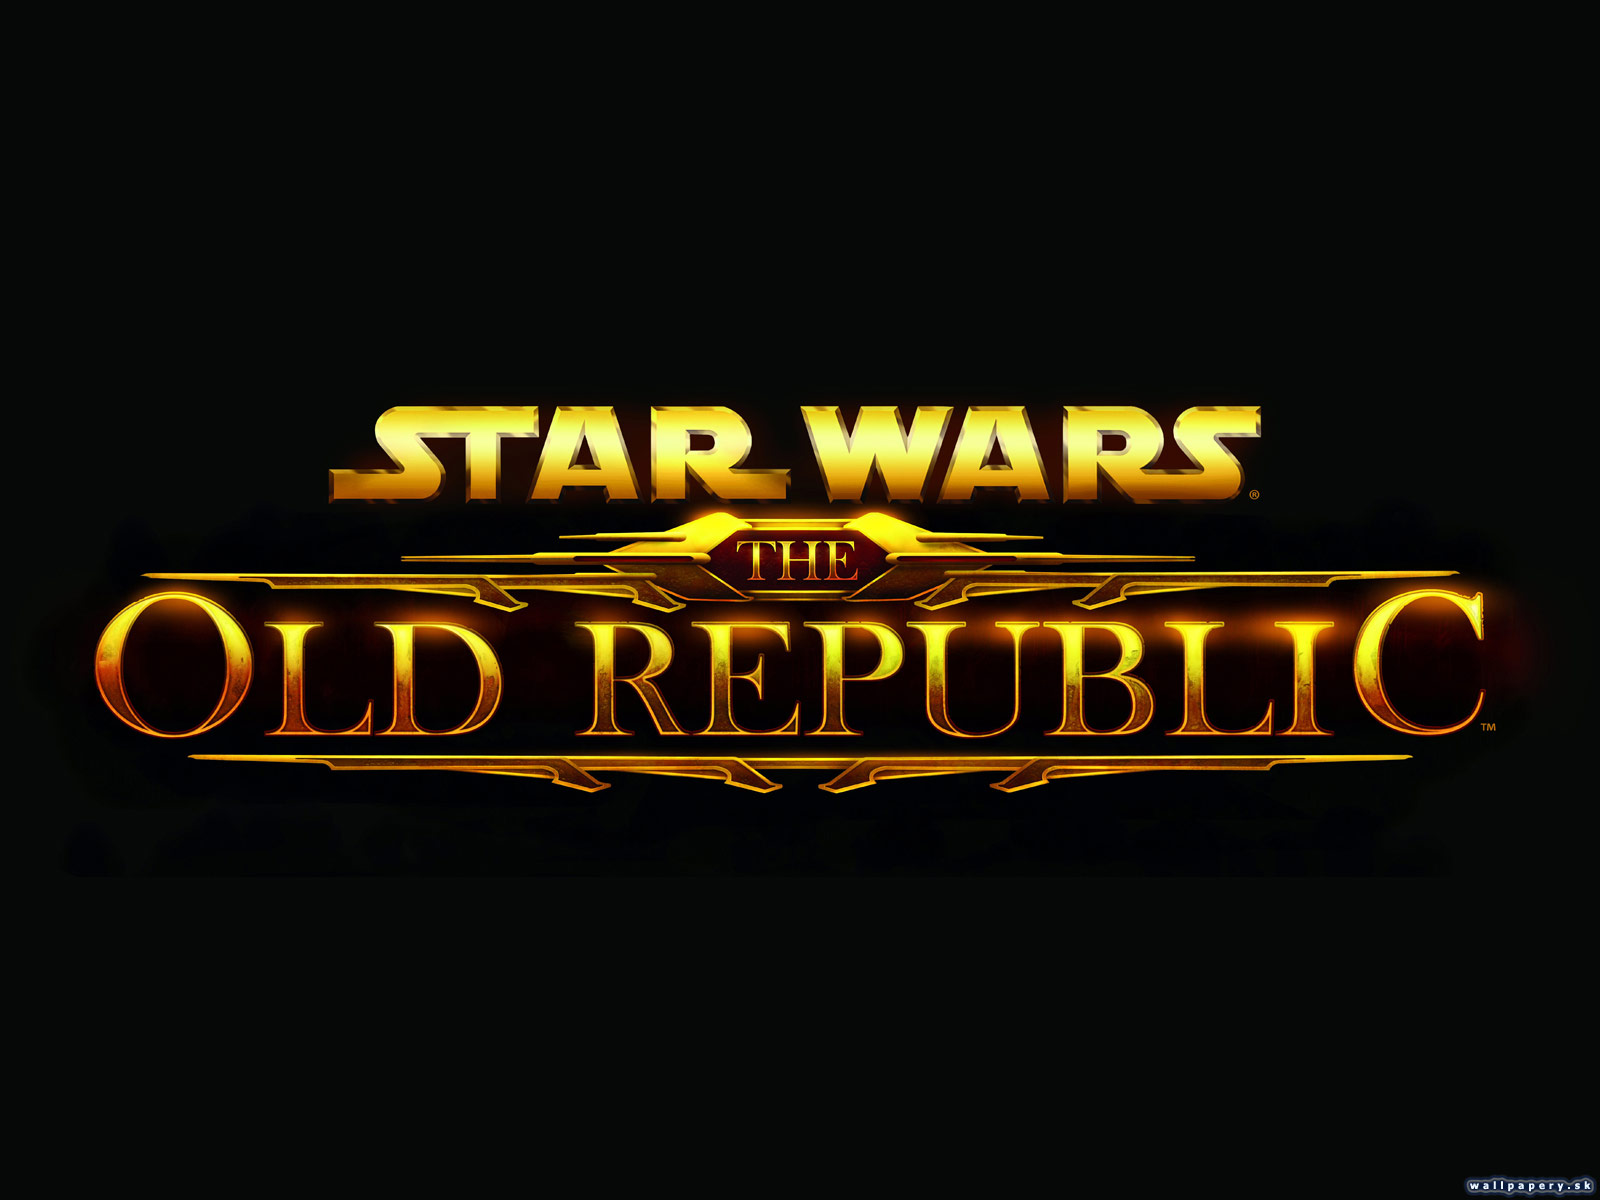 Star Wars: The Old Republic - wallpaper 5